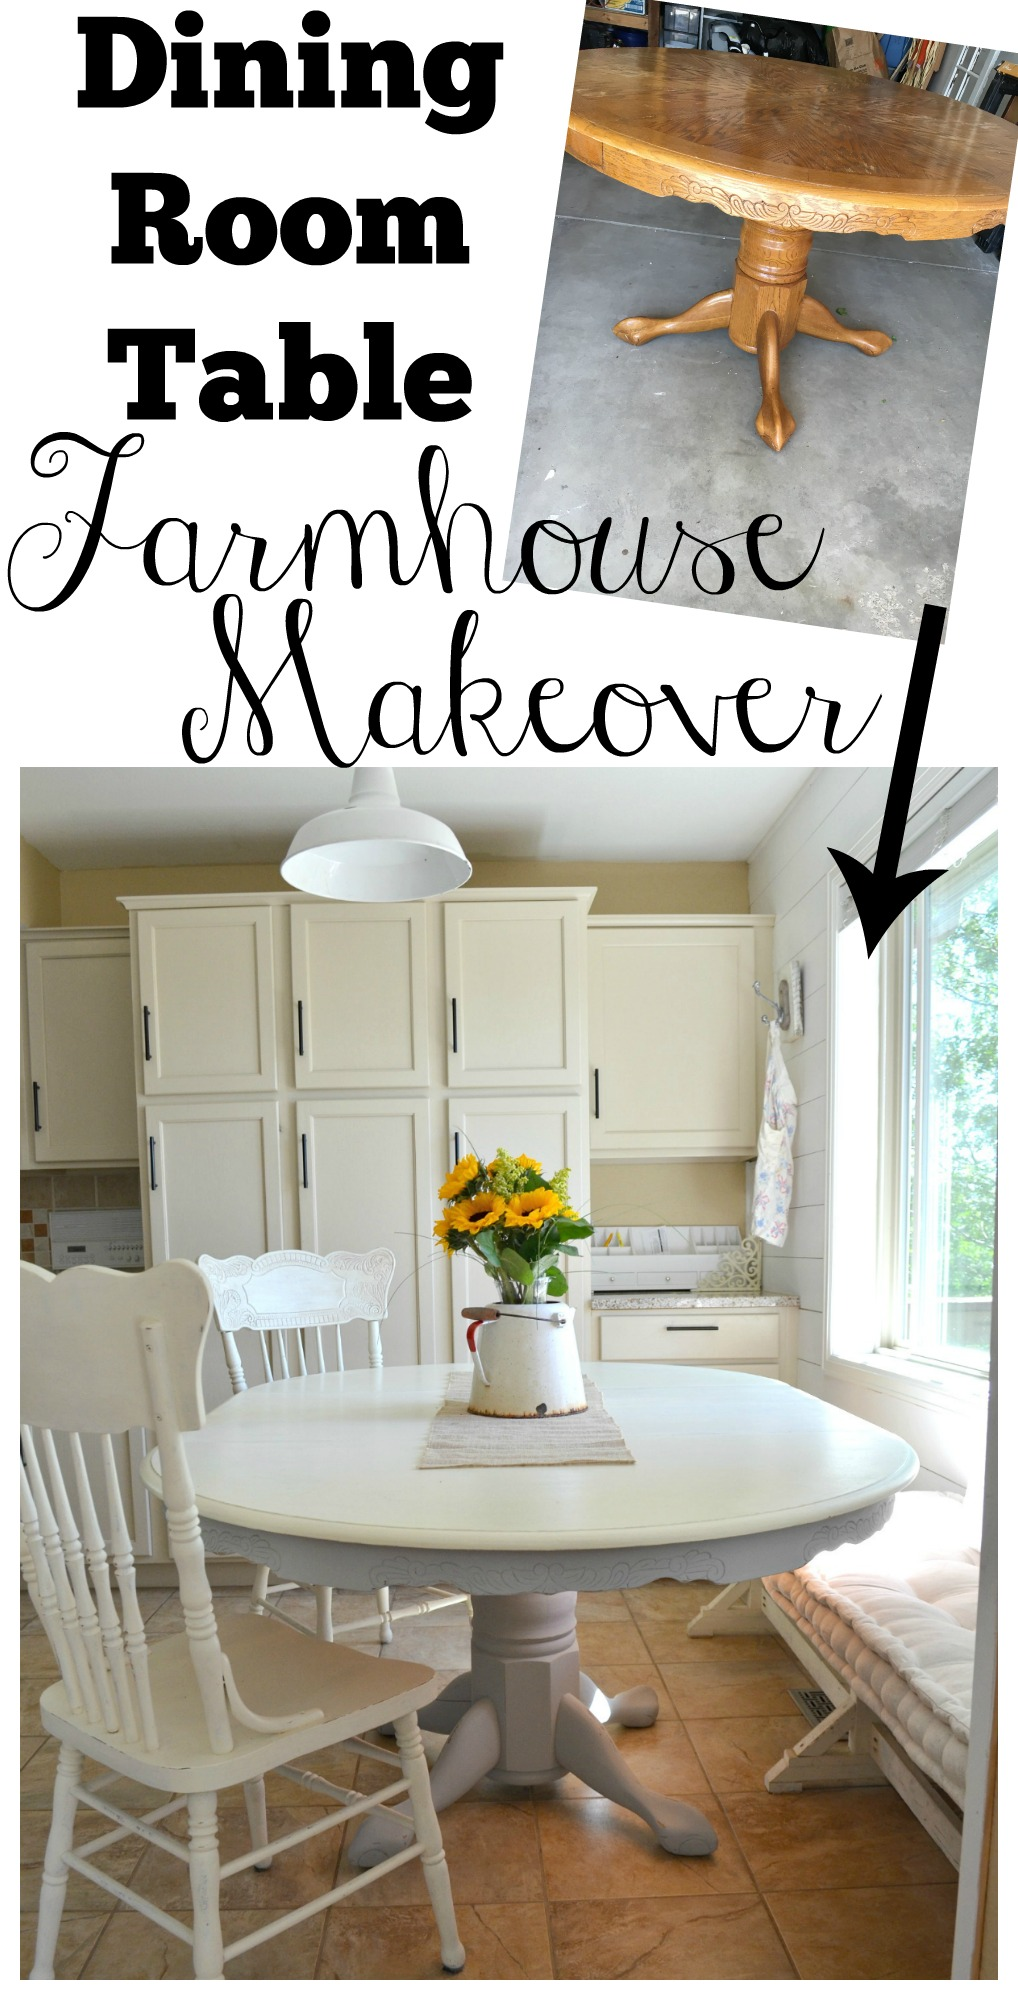 Chalk paint dining table makeover little vintage nest dining room table farmhouse makeover watchthetrailerfo